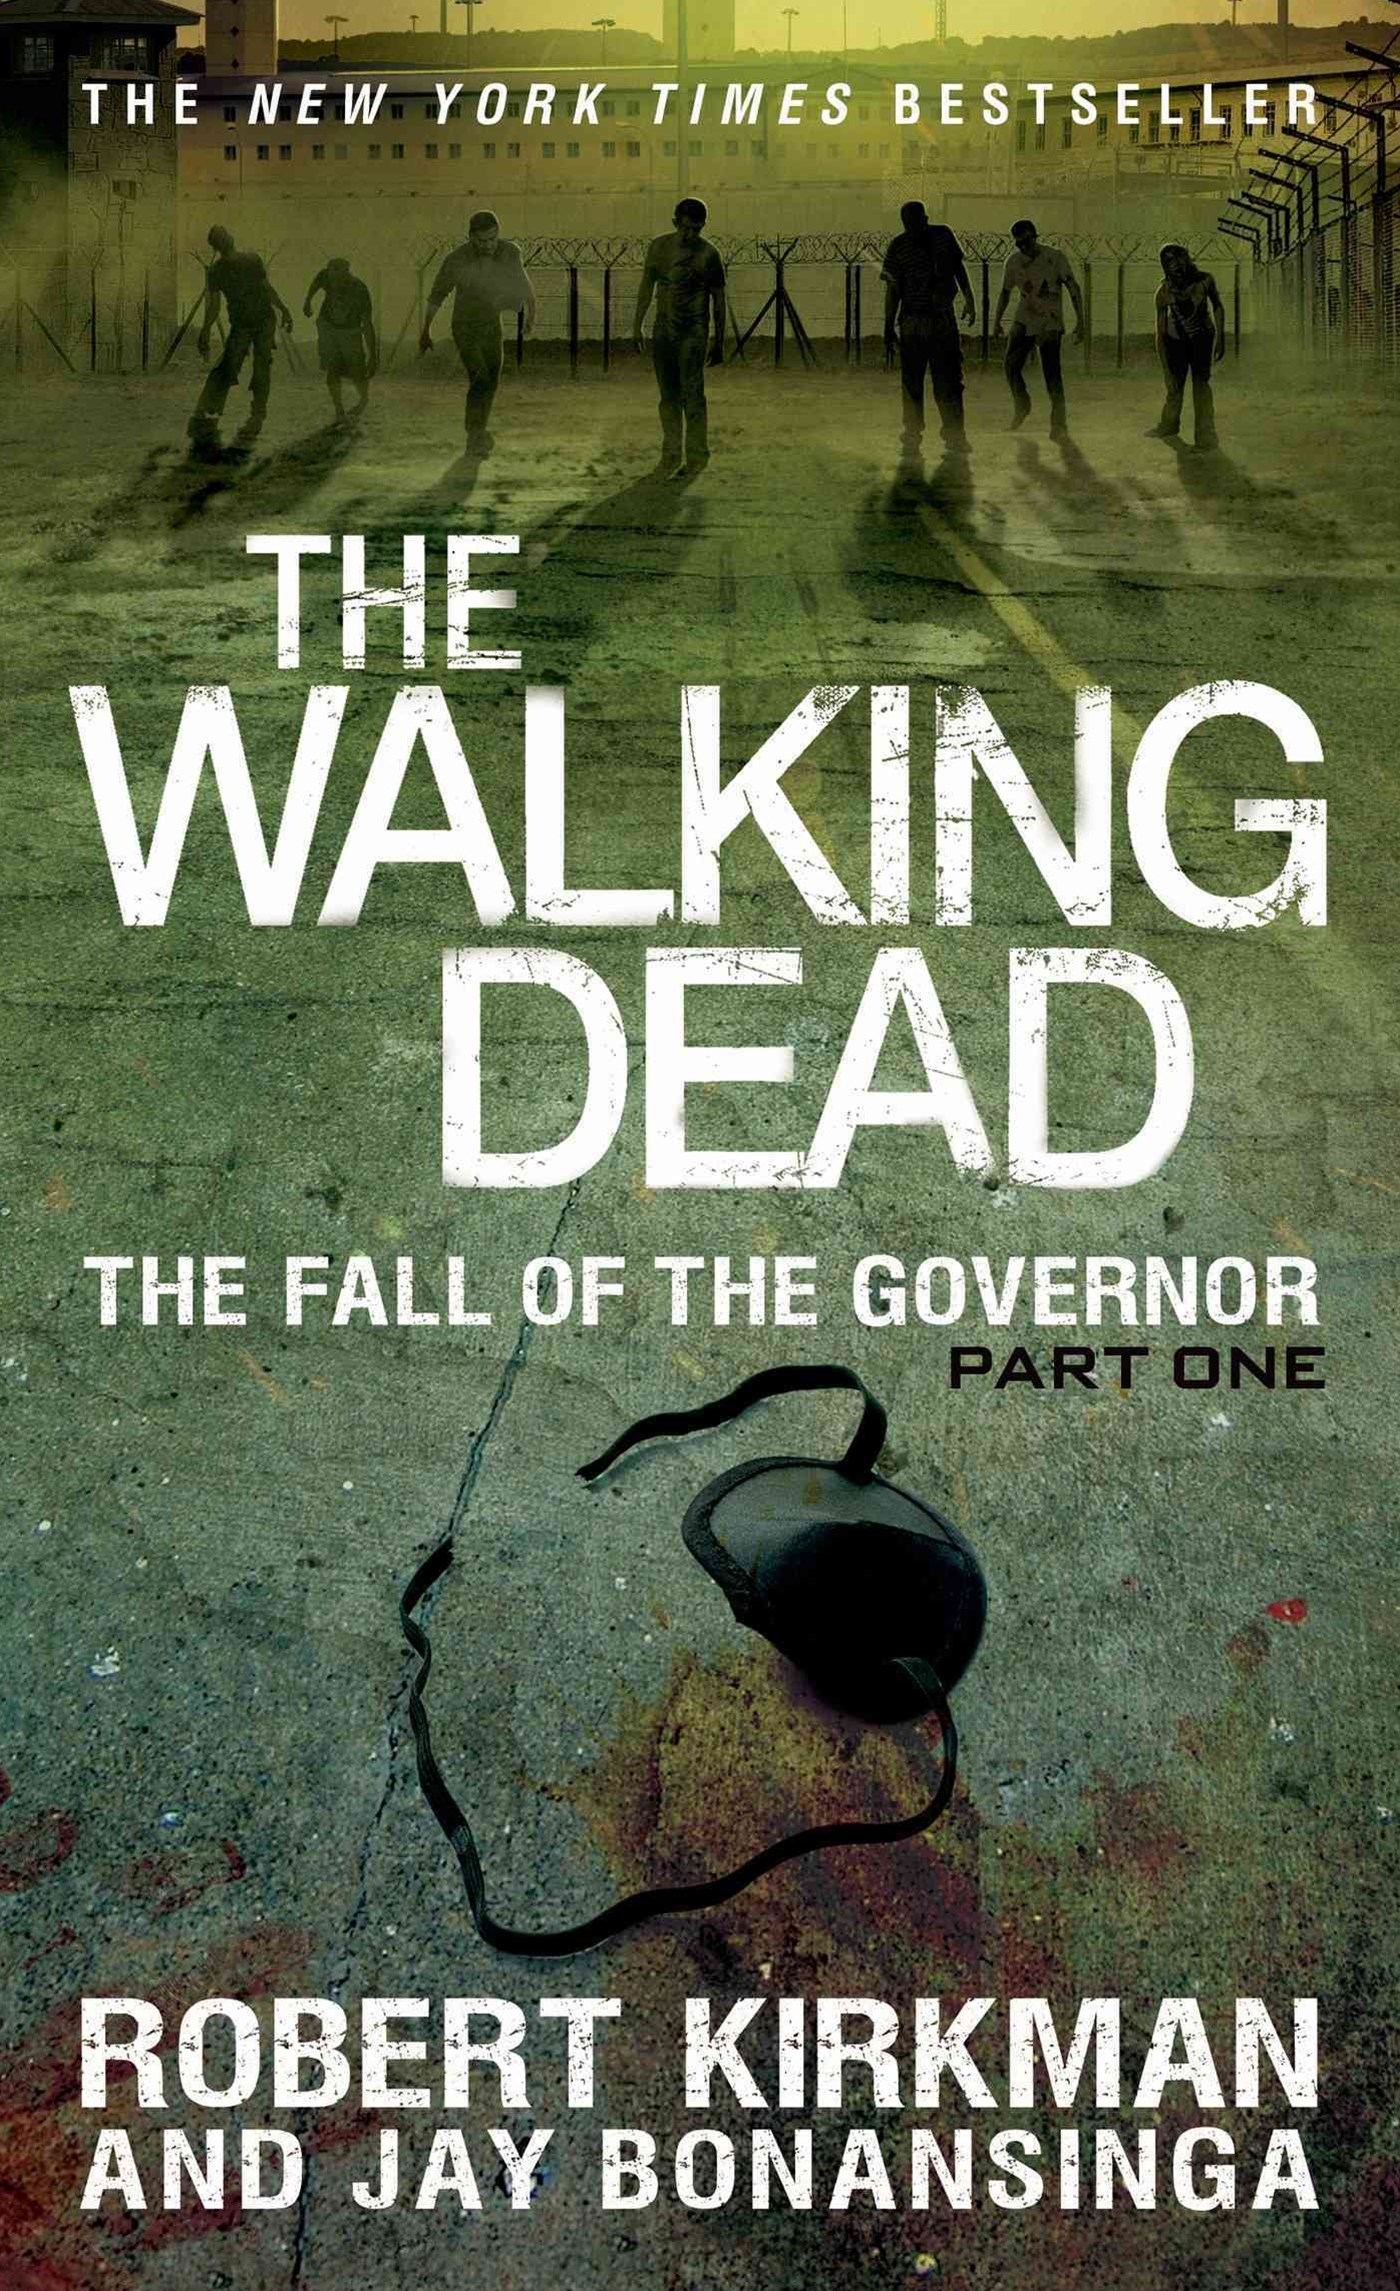 The Fall of the Governor